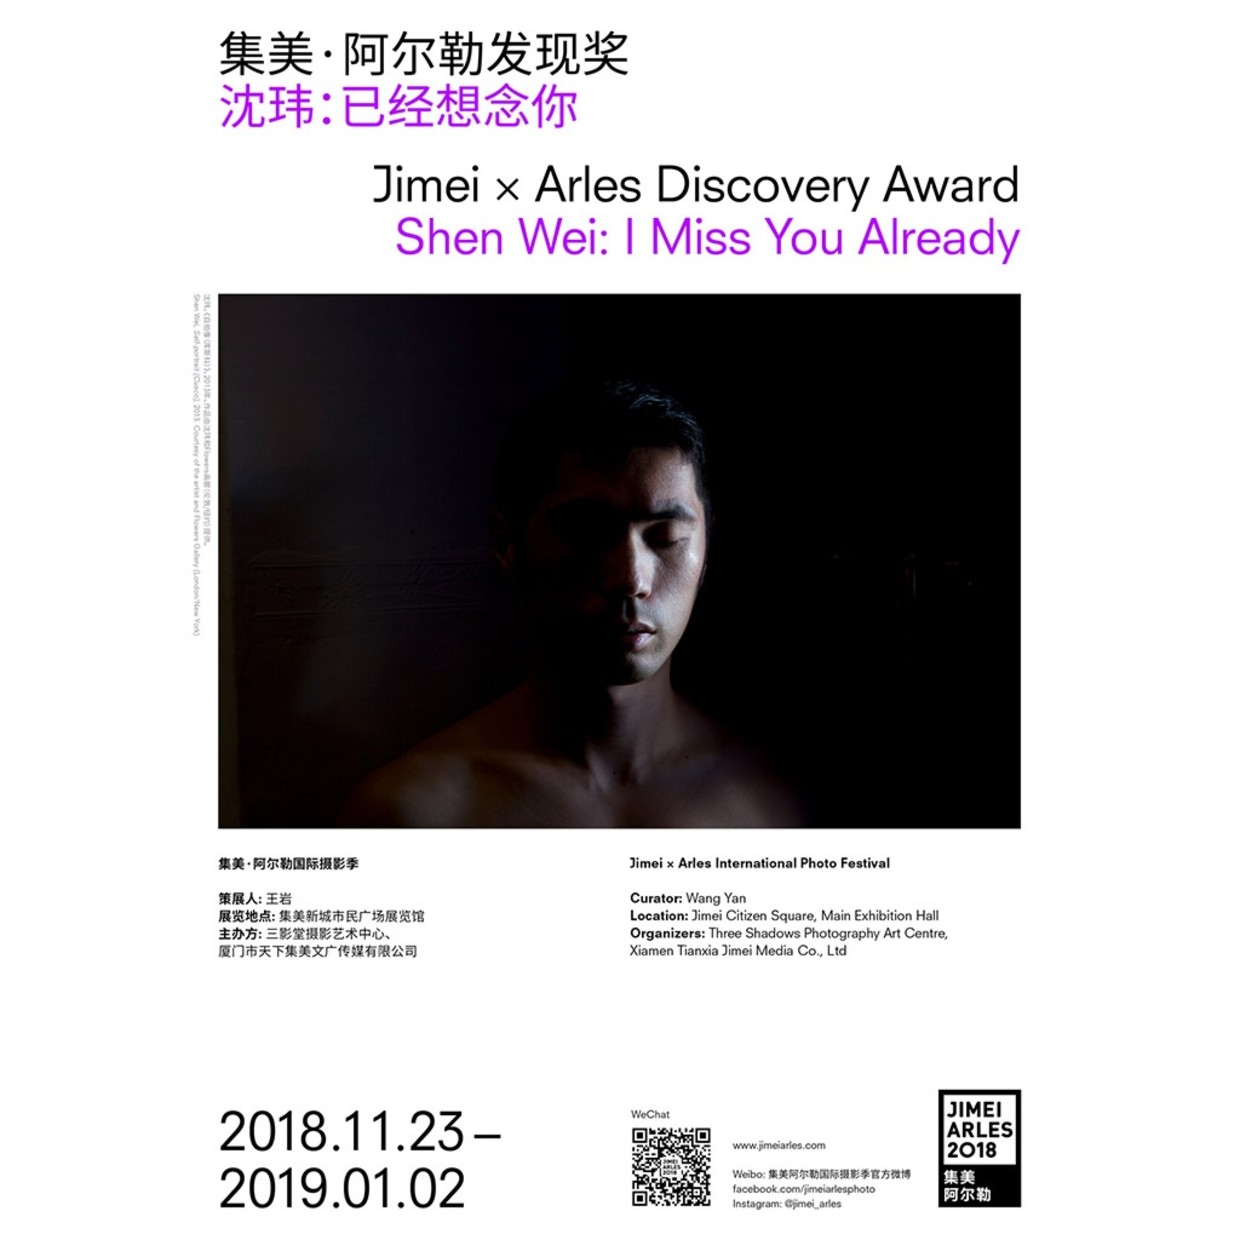 SHEN WEI I MISS YOU ALREADY CURATED BY WANG YAN Shen Wei often sees sustenance in photographic creation as a...